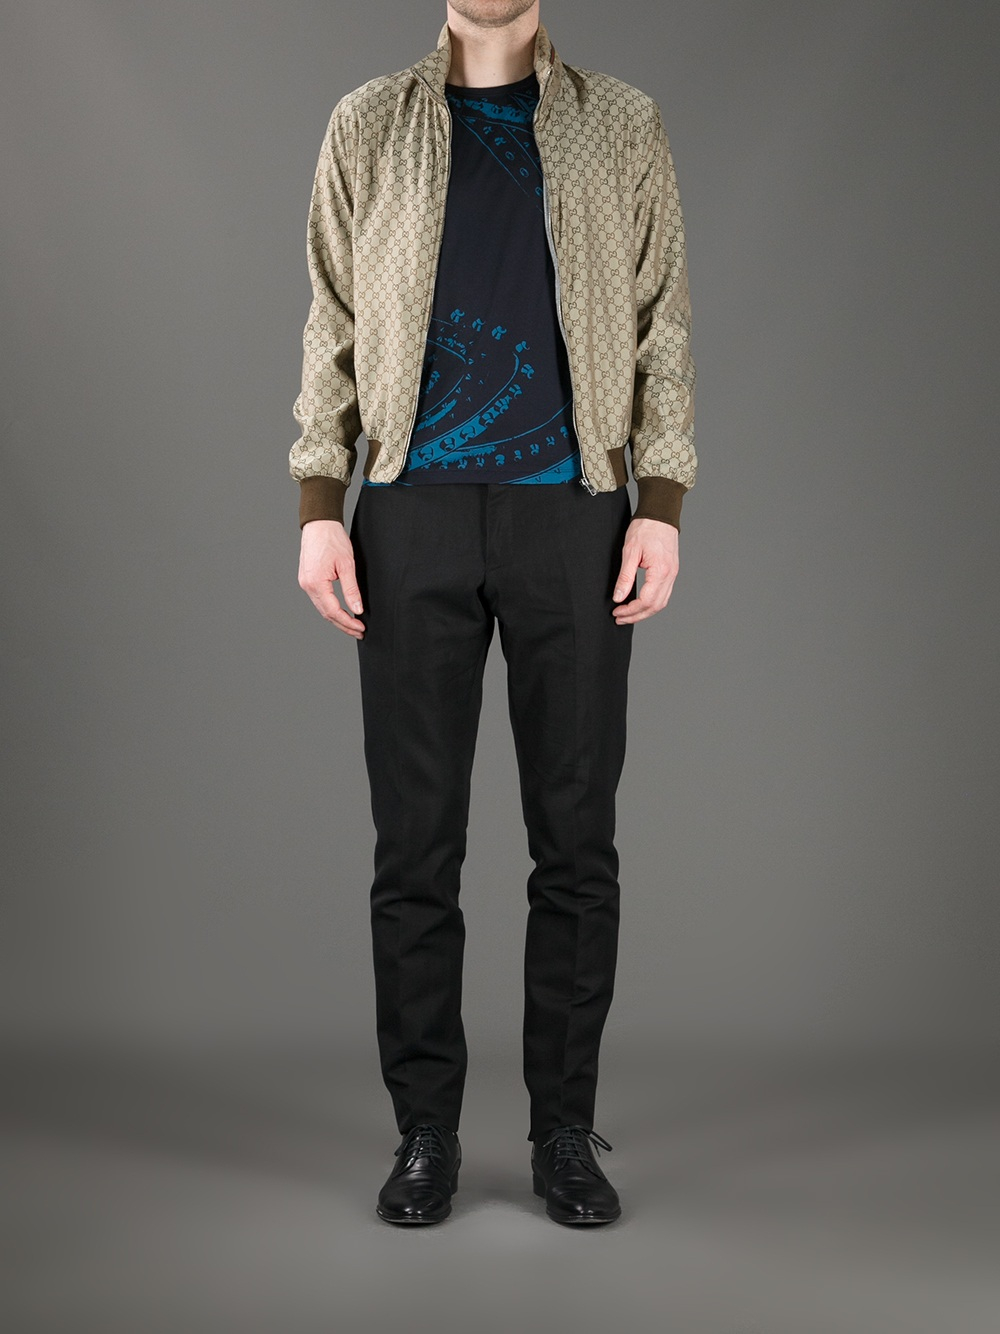 Lyst Gucci Logo Print Bomber Jacket In Metallic For Men